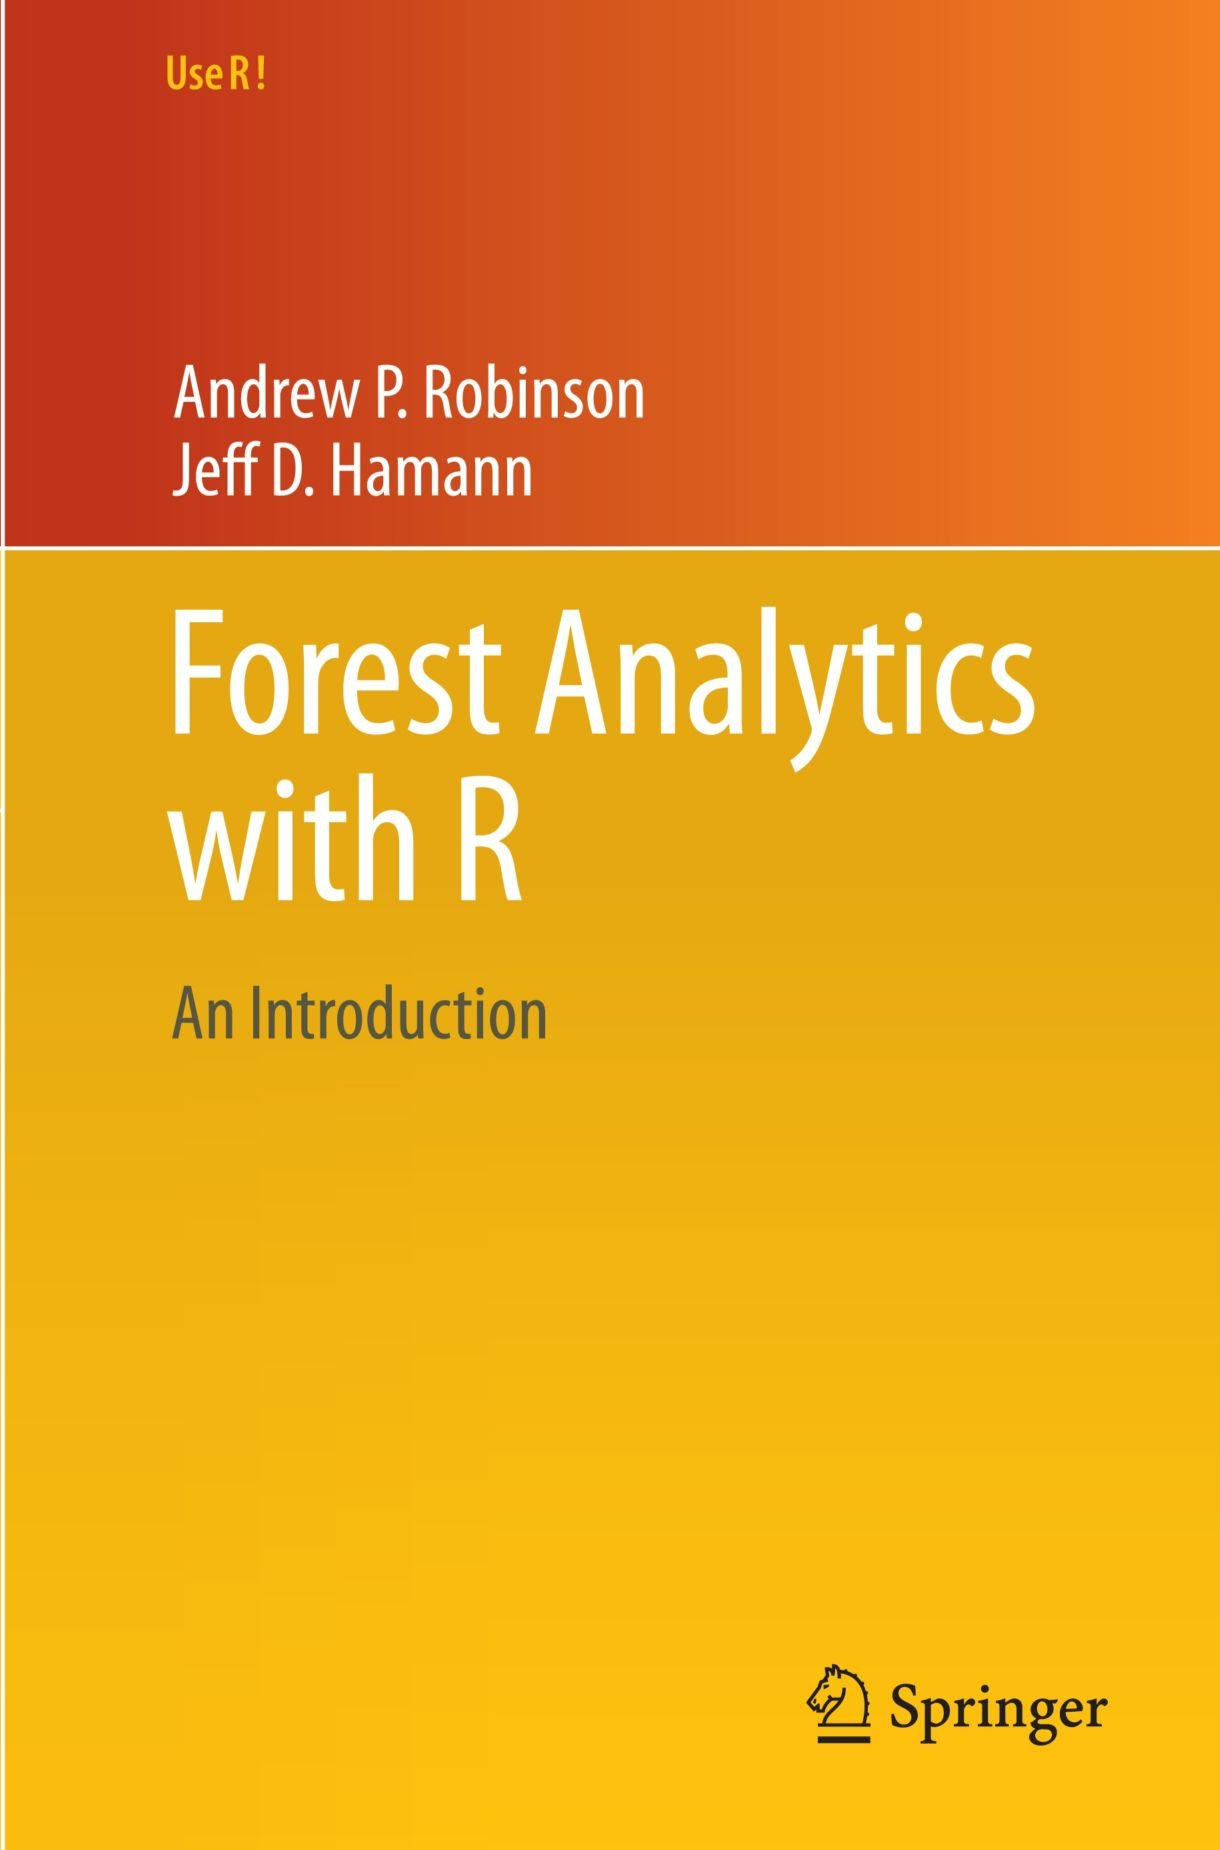 Forest Analytics with R: An Introduction (Use R!)